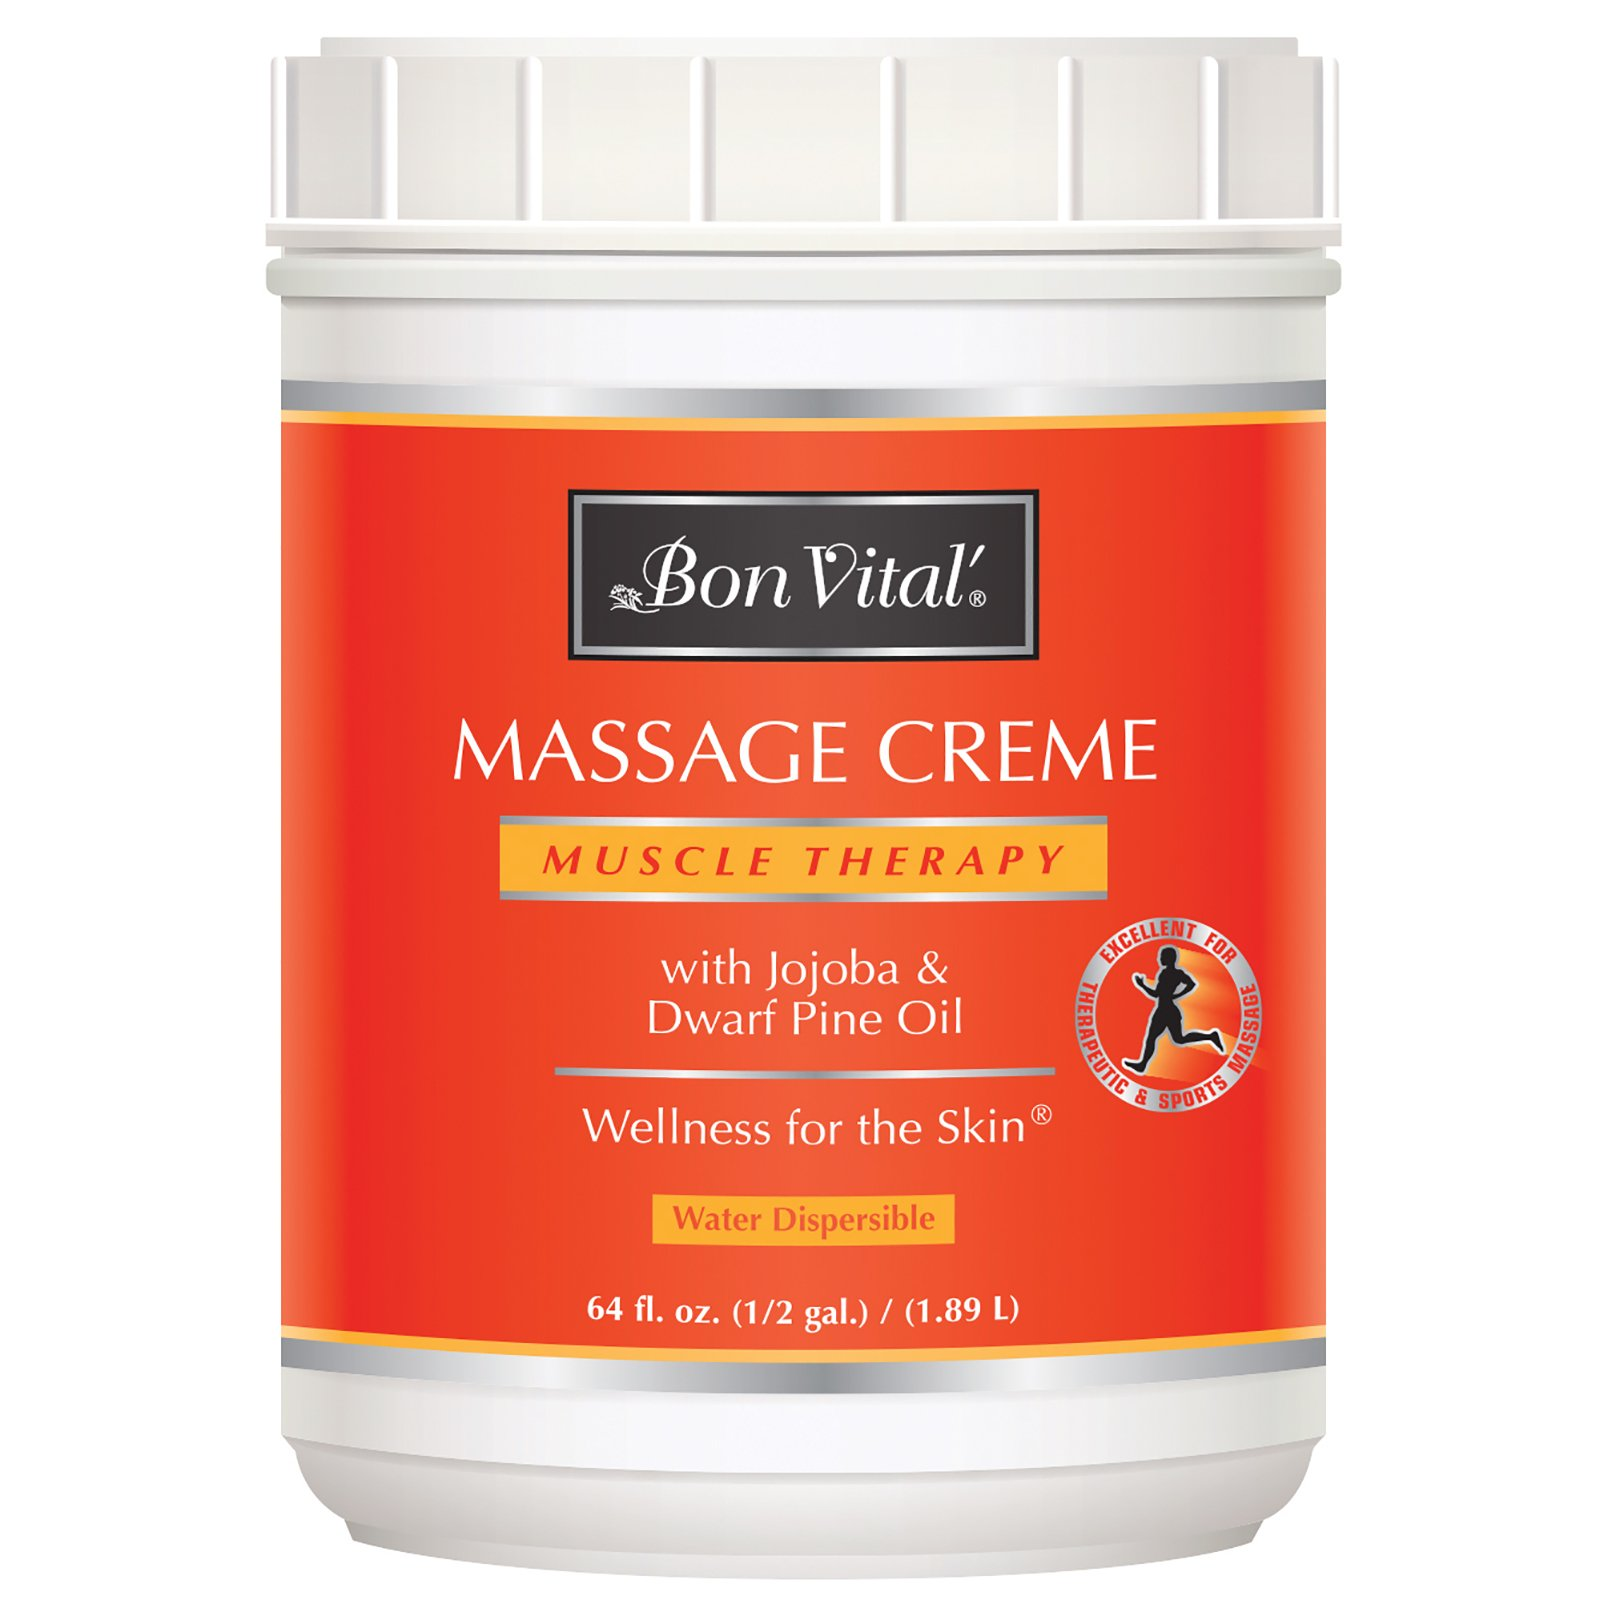 Bon Vital' Muscle Therapy Massage Crème, Professional Massage Cream with Dwarf Pine Oil & Essential Oils for Relaxation & Sore Muscle Relief, Deep Tissue & Sports Massage Techniques, 1/2 Gallon Jar